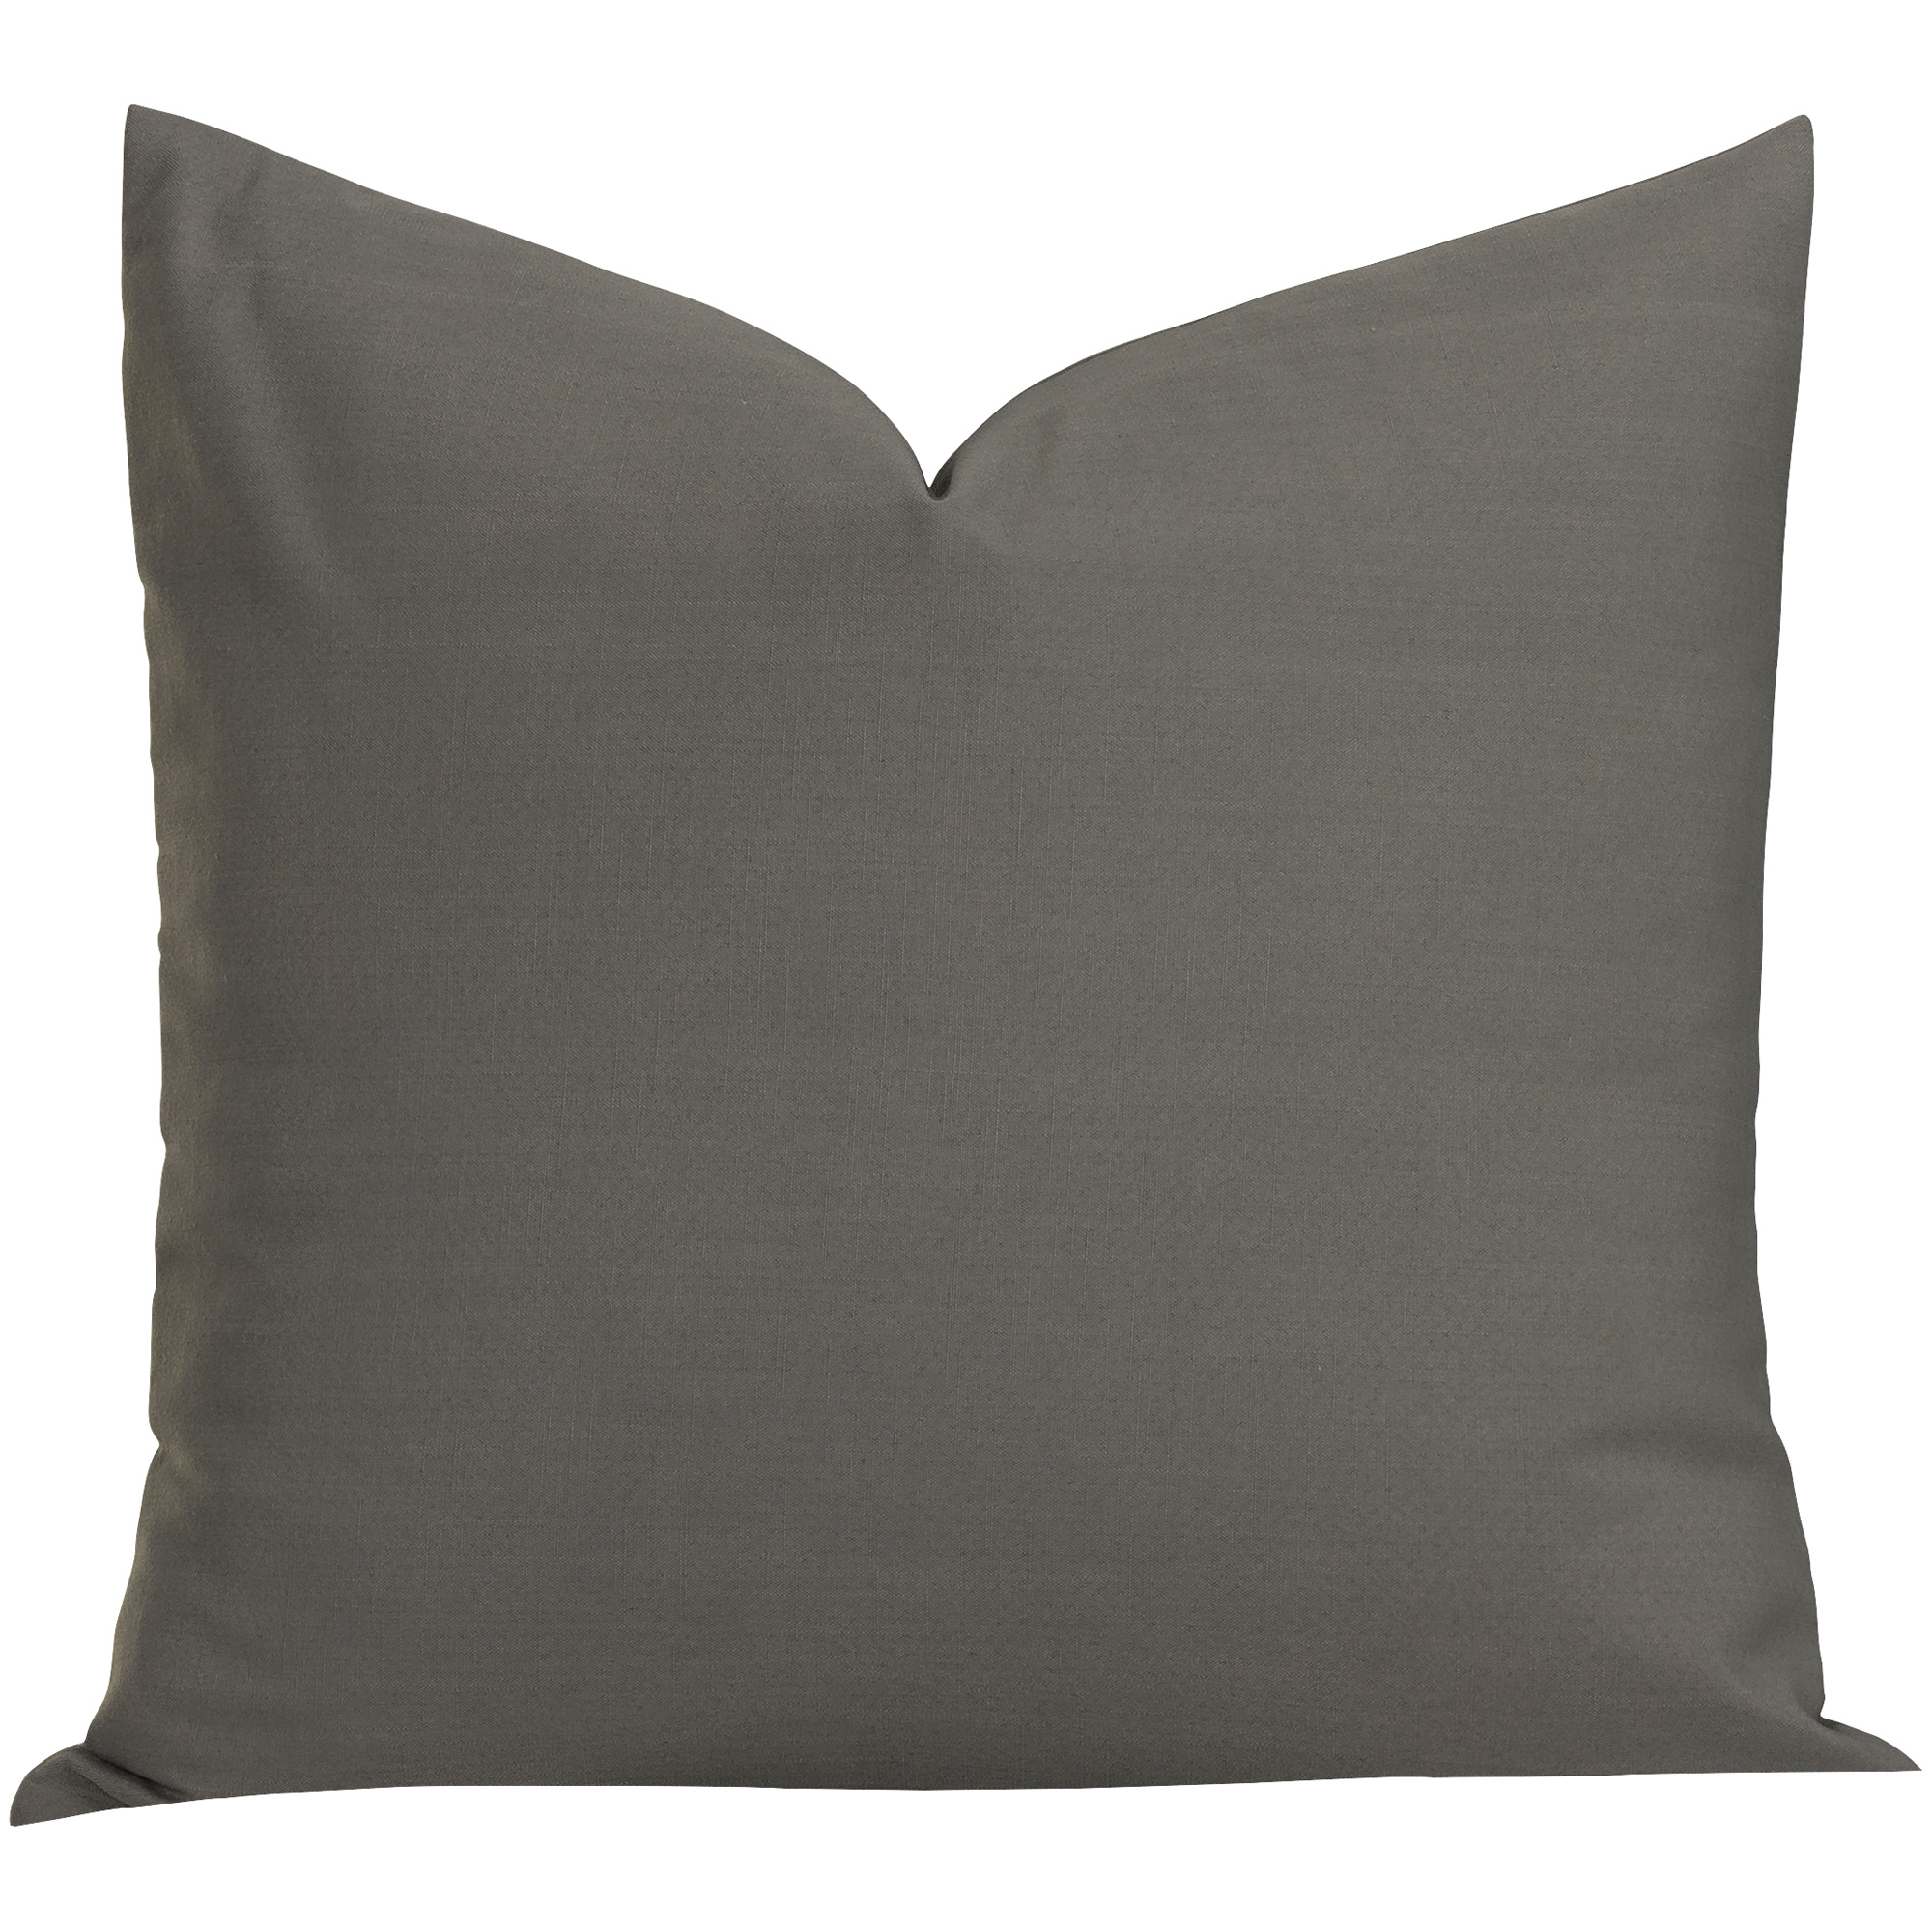 Sis Enterprises | Atlantic Smoke Euro Pillow